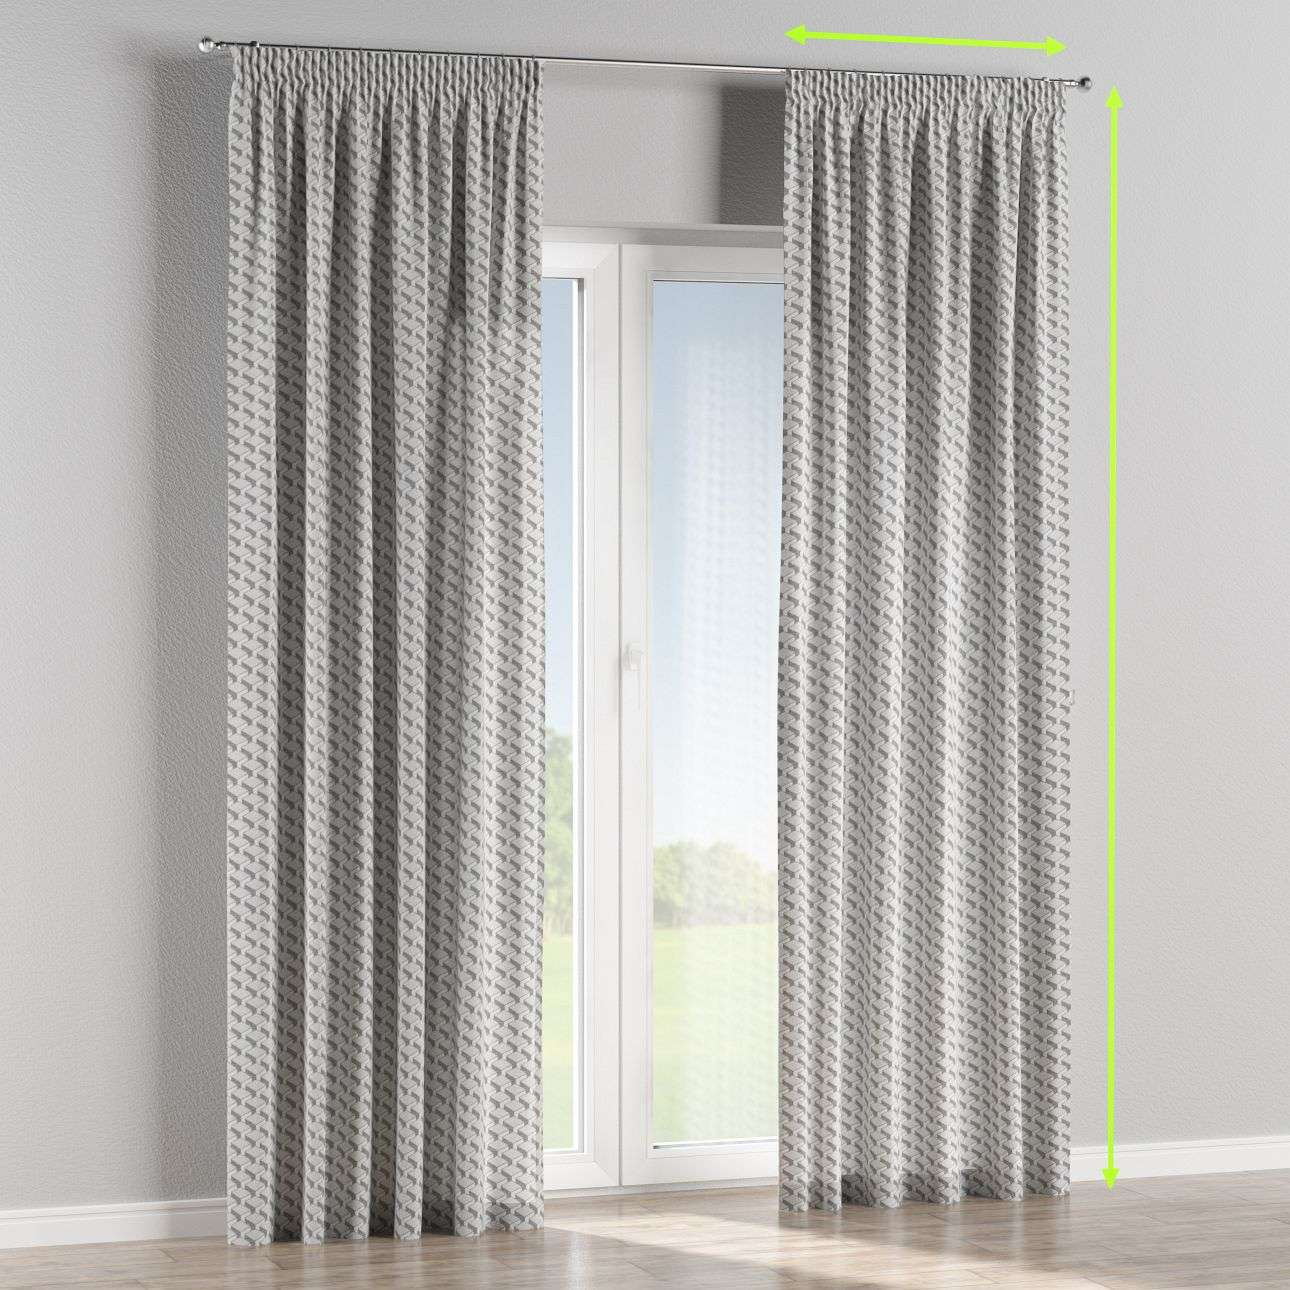 Pencil pleat curtains in collection Rustica, fabric: 138-18